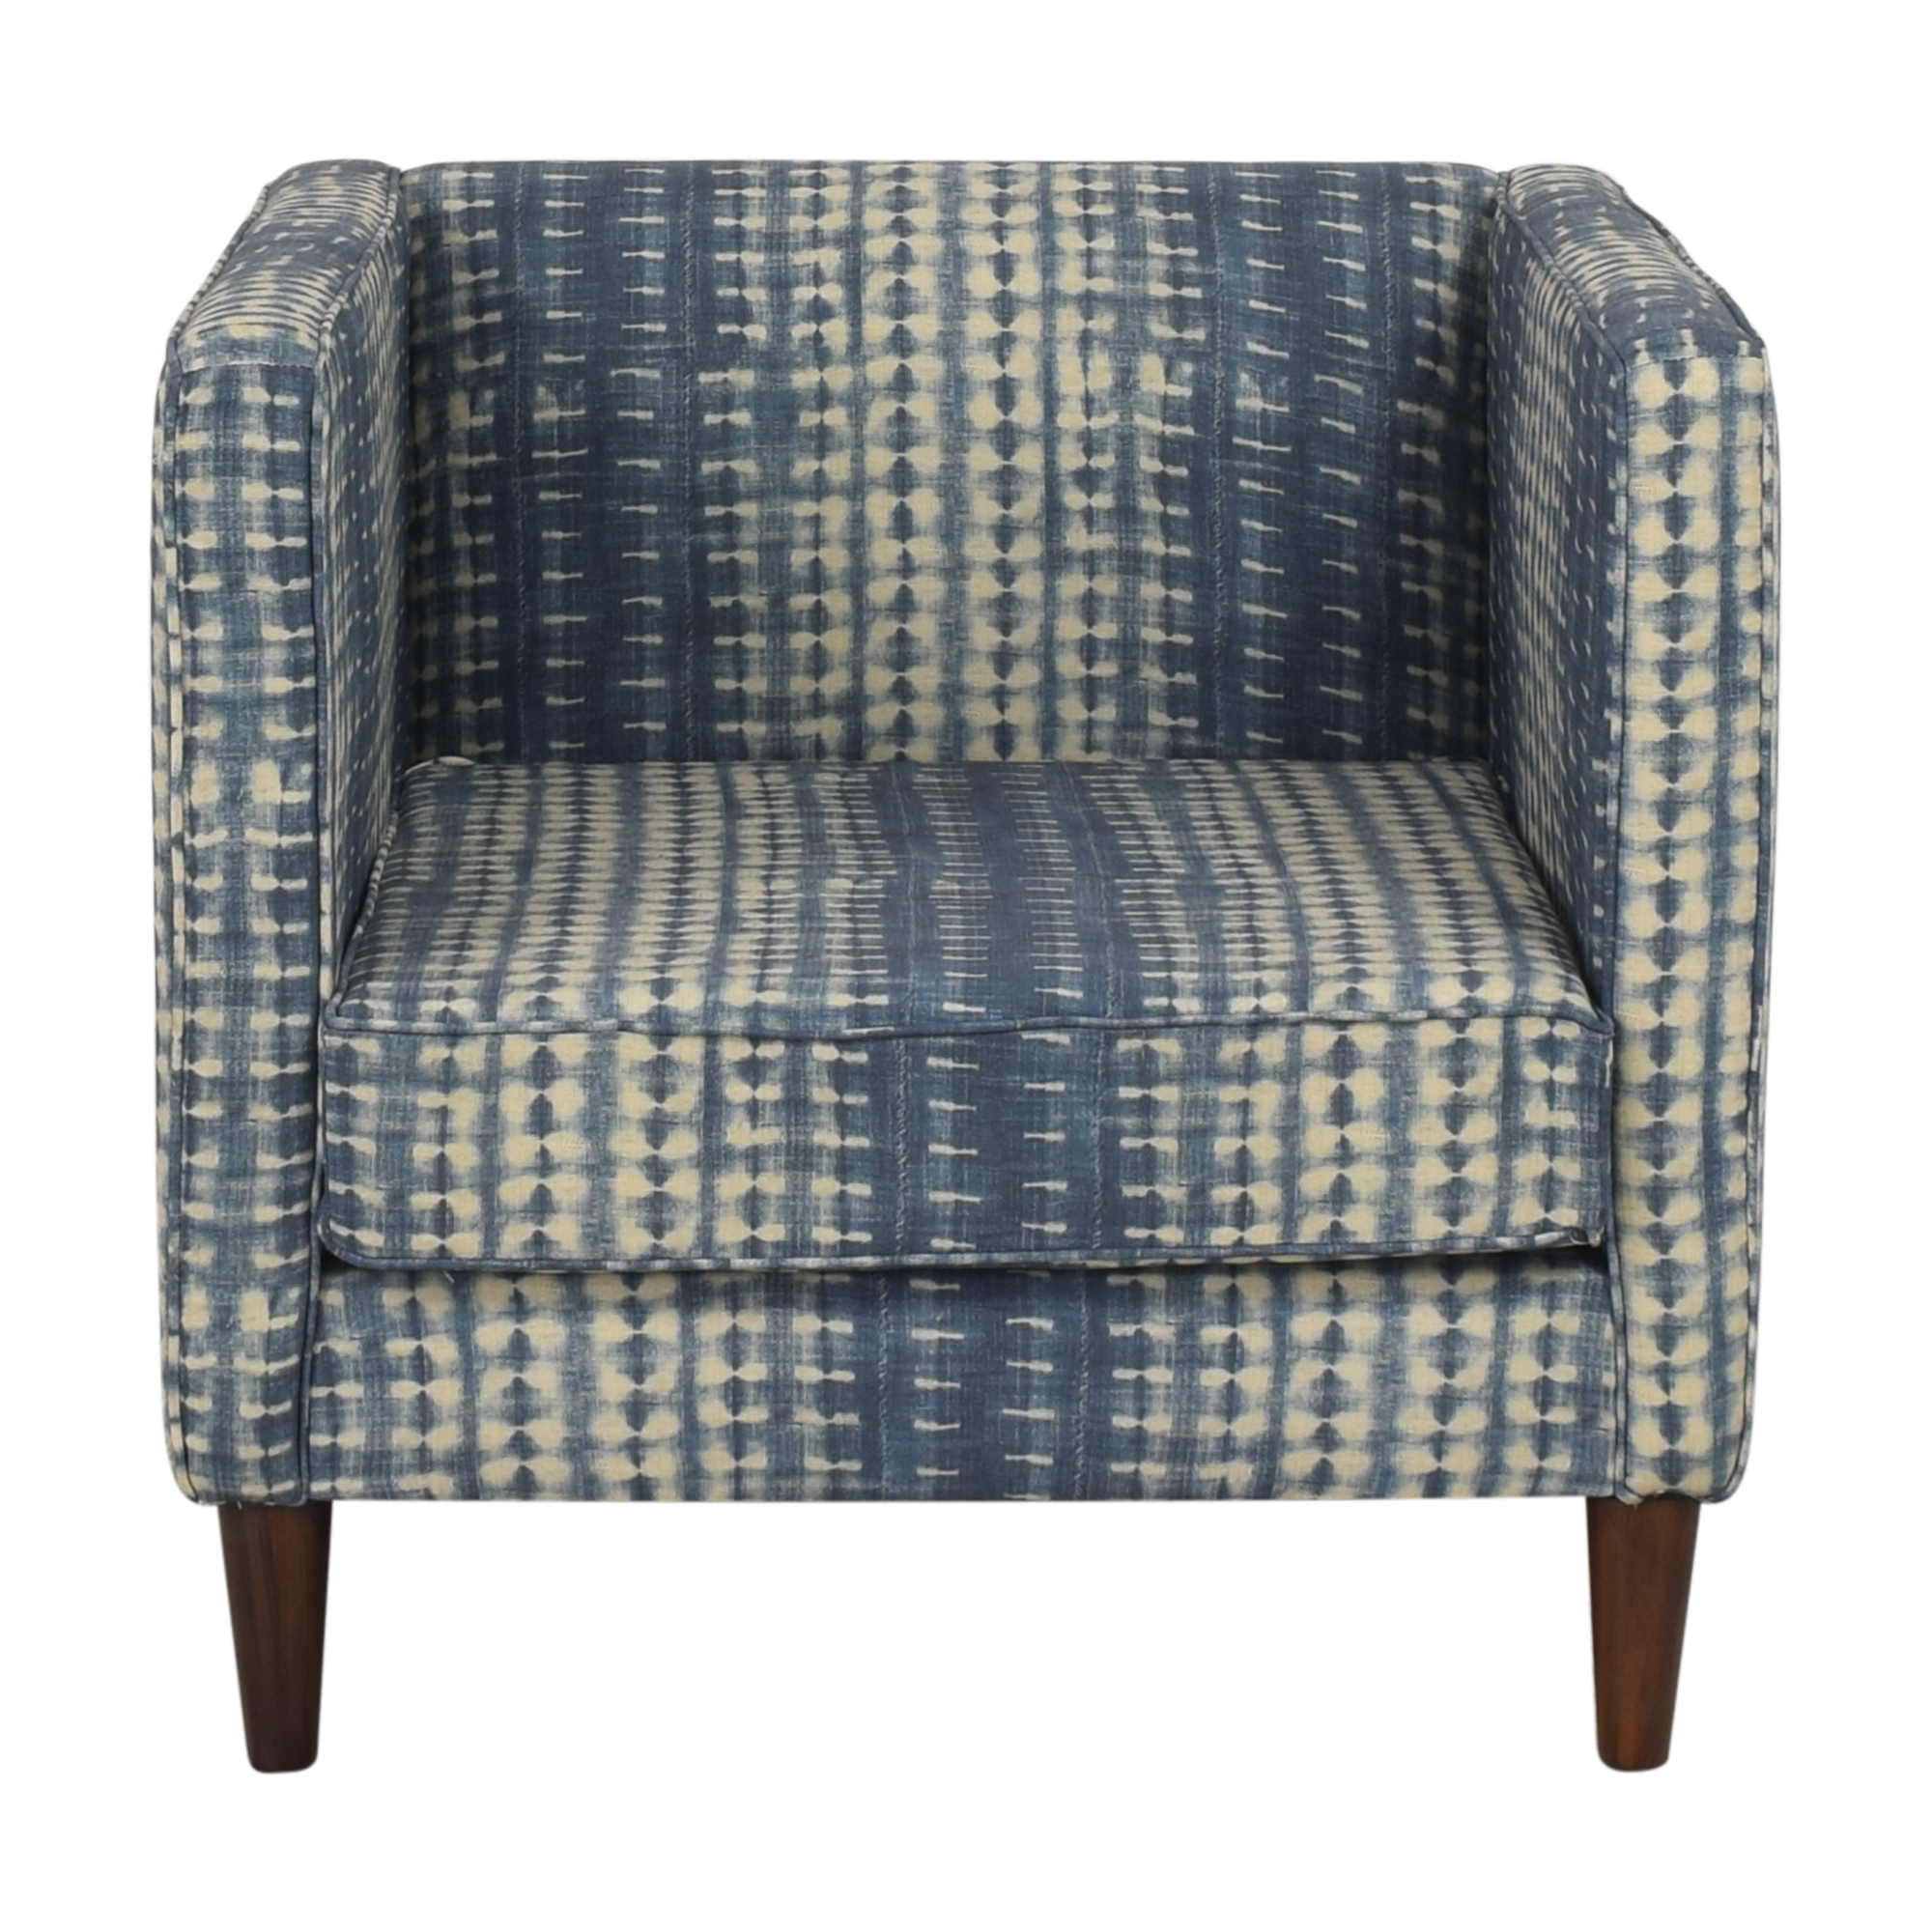 buy The Inside Shibori Tuxedo Chair The Inside Accent Chairs